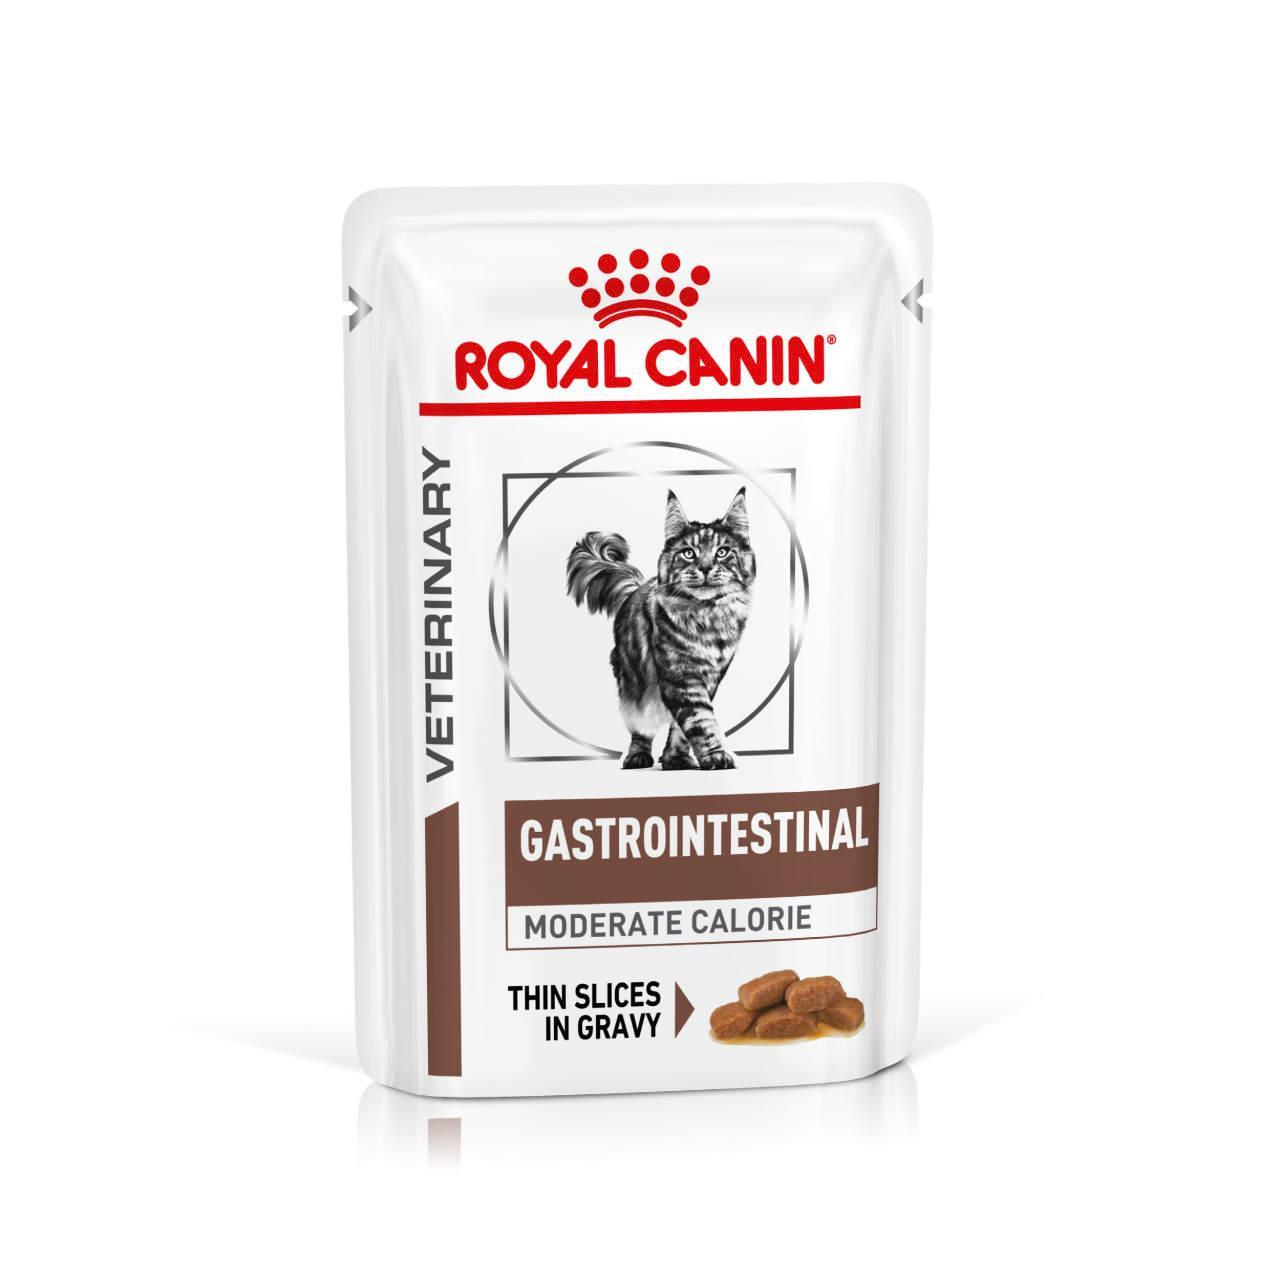 An image of Royal Canin Feline Veterinary Diet Gastro Intestinal Moderate Calorie